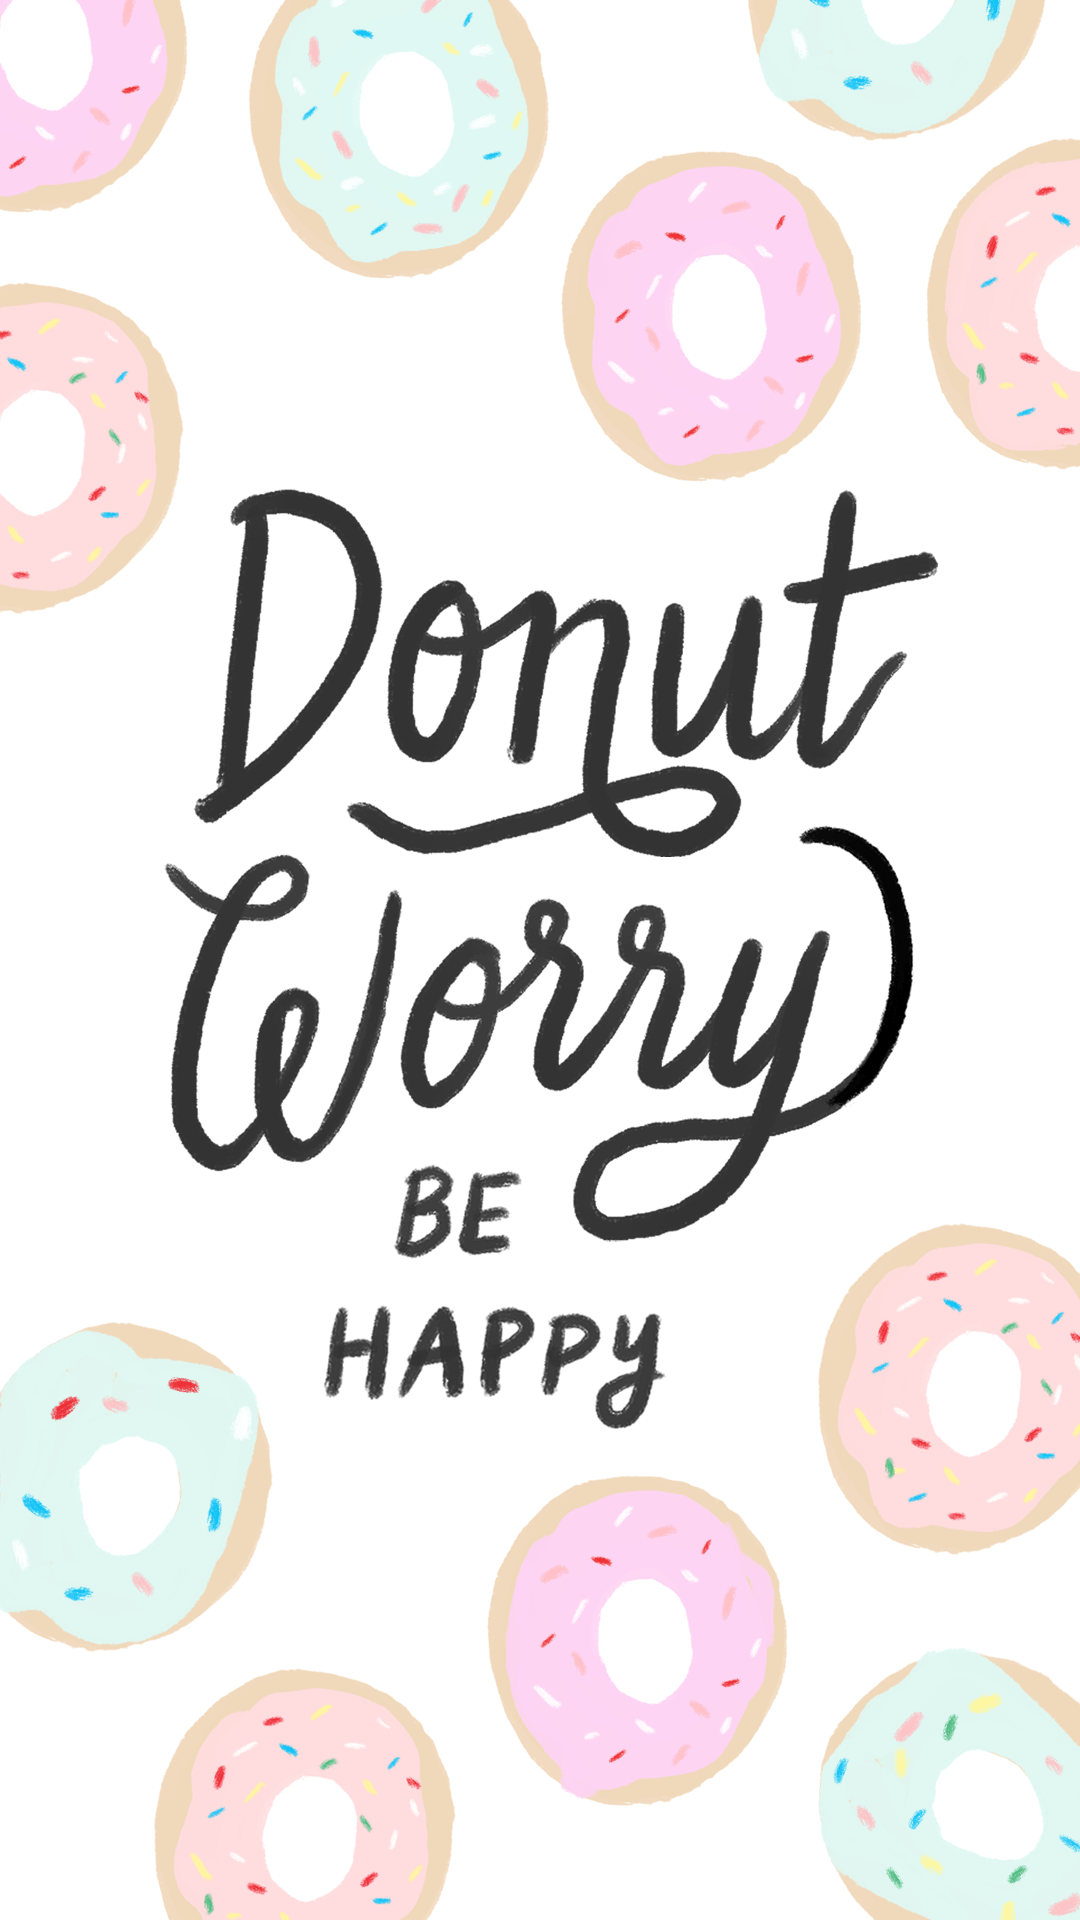 1080x1920 Free desktop and iPhone wallpaper.   words to live by   Iphone ...